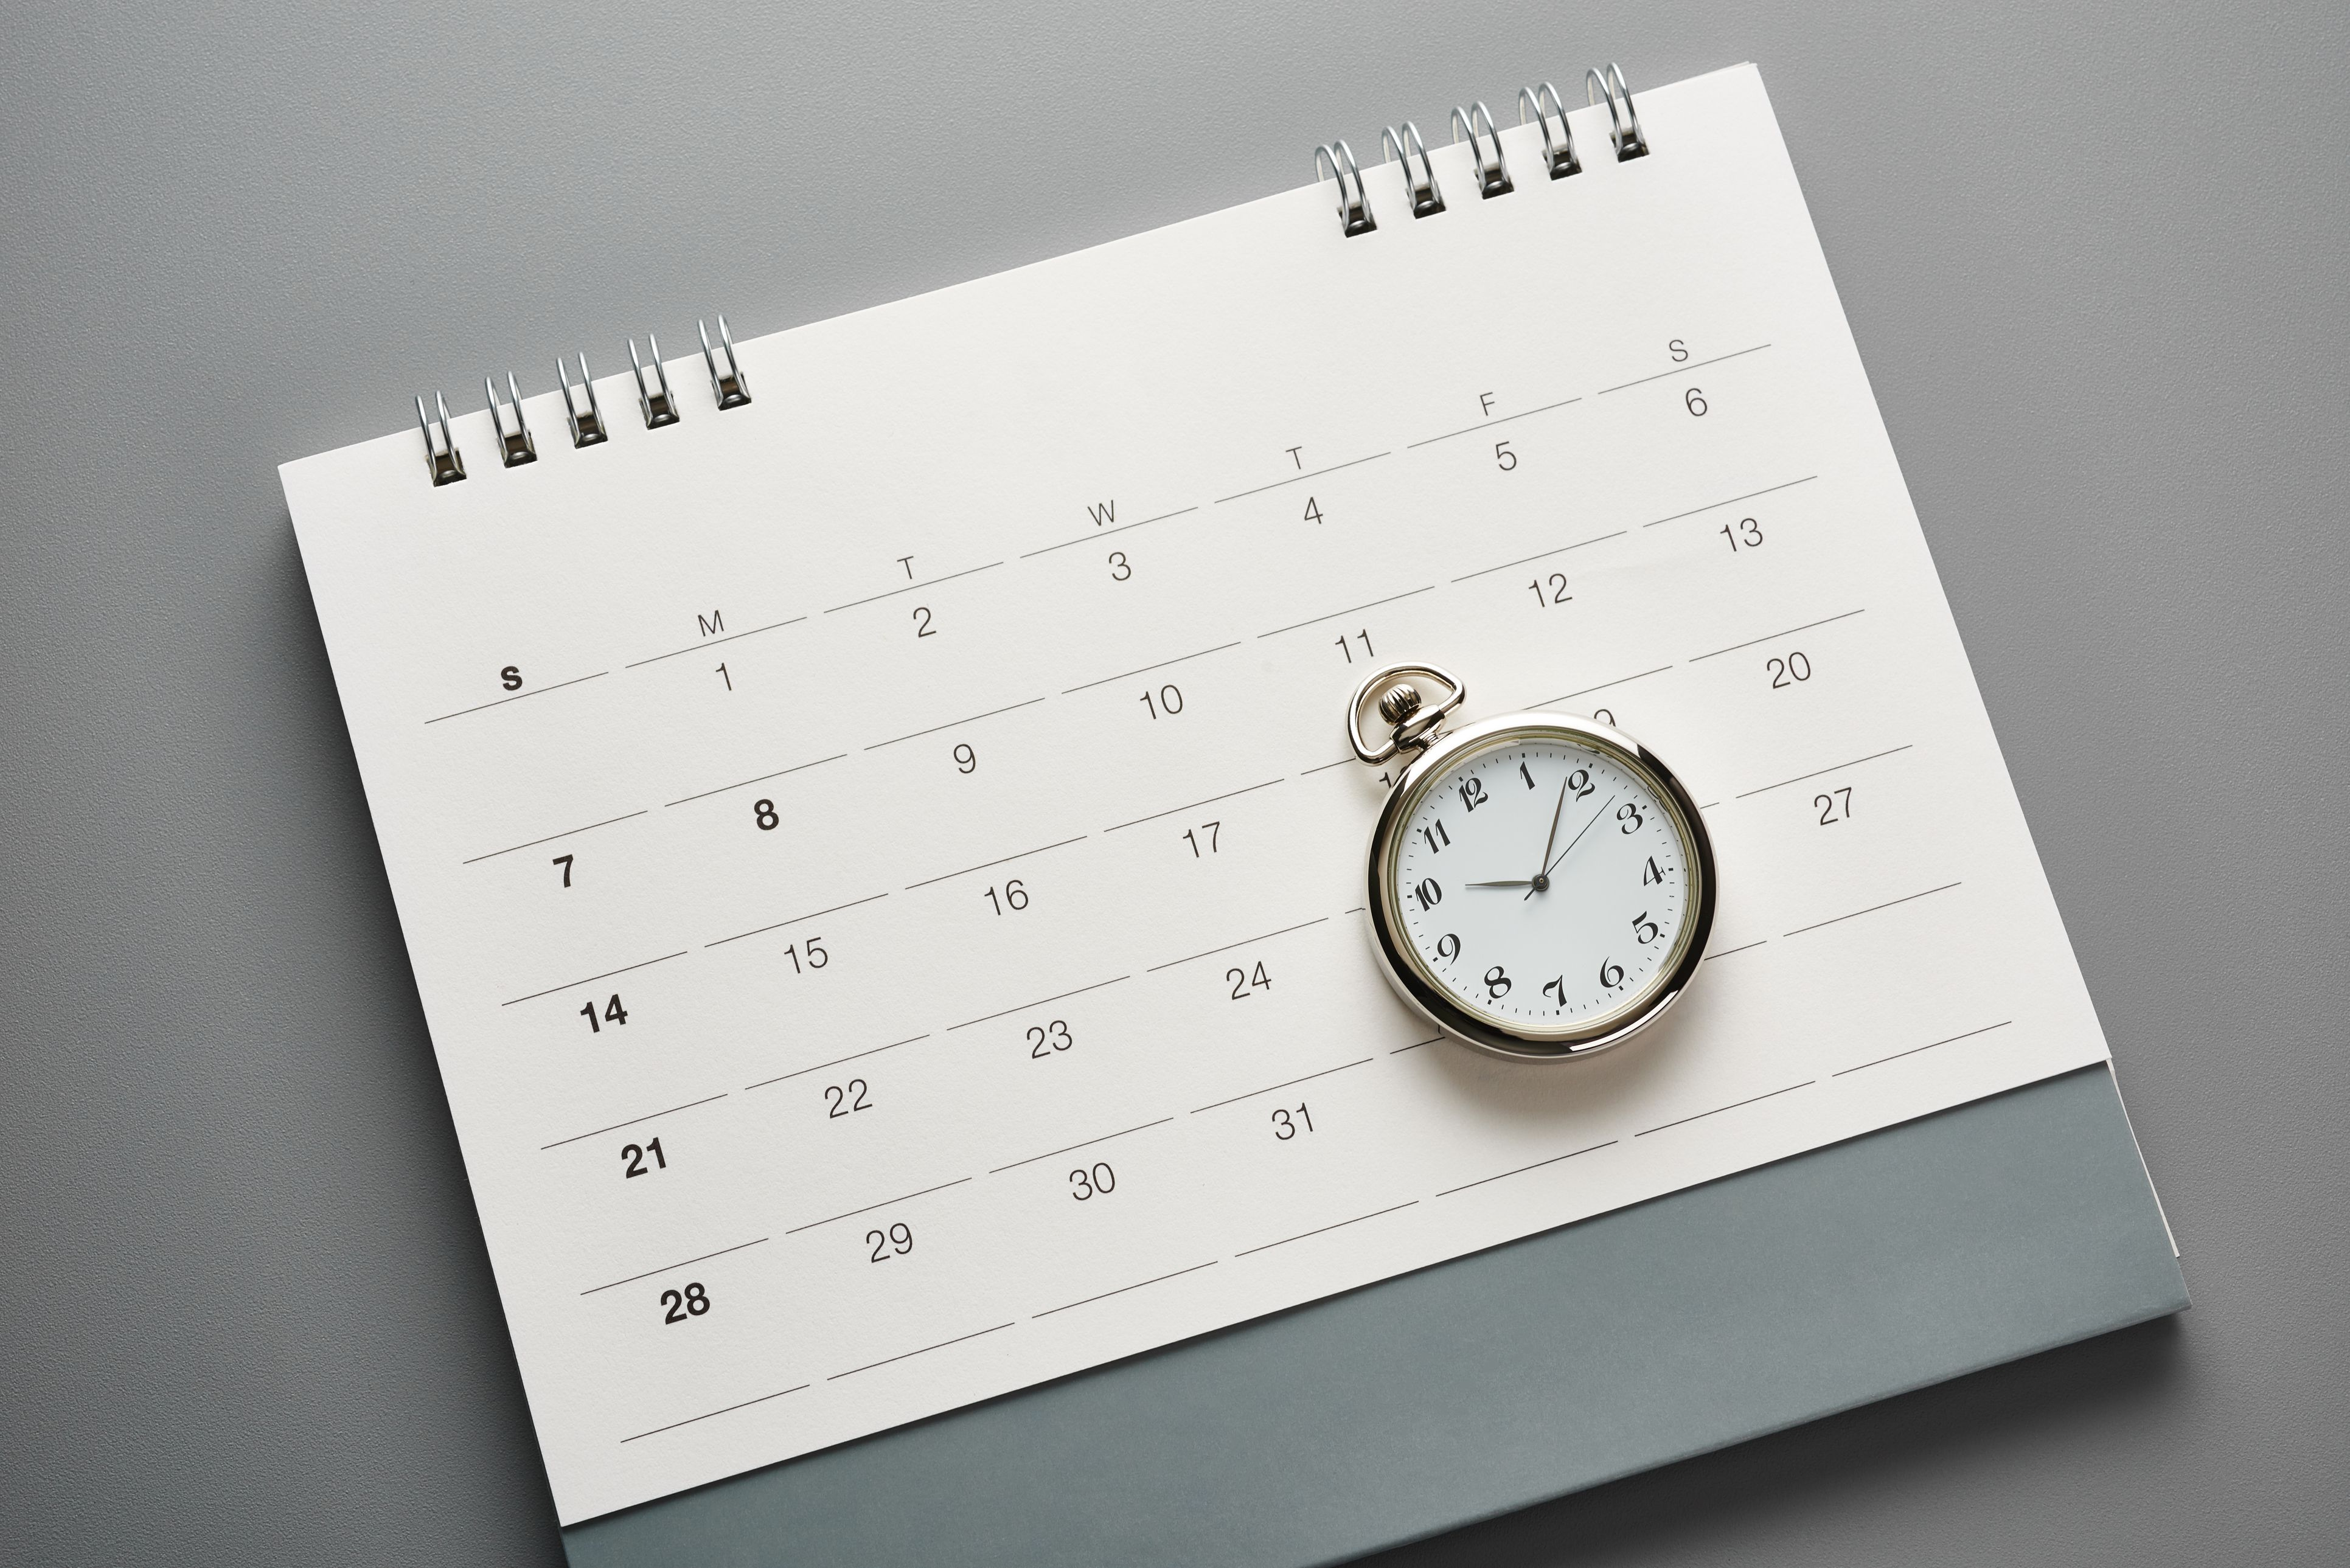 Pocket watch laying on top of a calendar, representing deadlines.